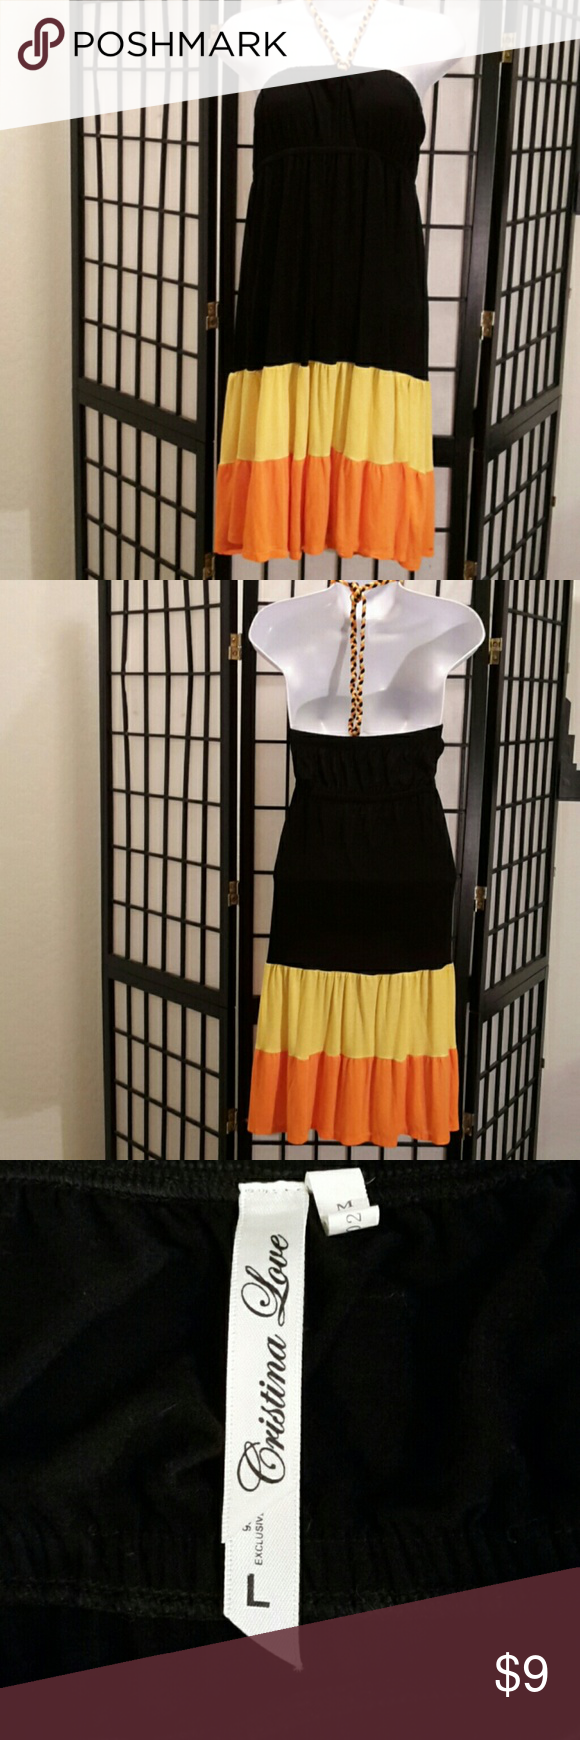 Cristina Love Tube Top Dress *EUC* Multi-color, Color Block, Empire Waist, Tie Neck, Stretch, A-Line, 95% Polyester 5% Spandex, No 🚫 trade and No 🚫 price drop! Thank you for sharing my closet, I will ALWAYS show you the Posh Love ❤ by doing the same💕 Cristina Love Dresses